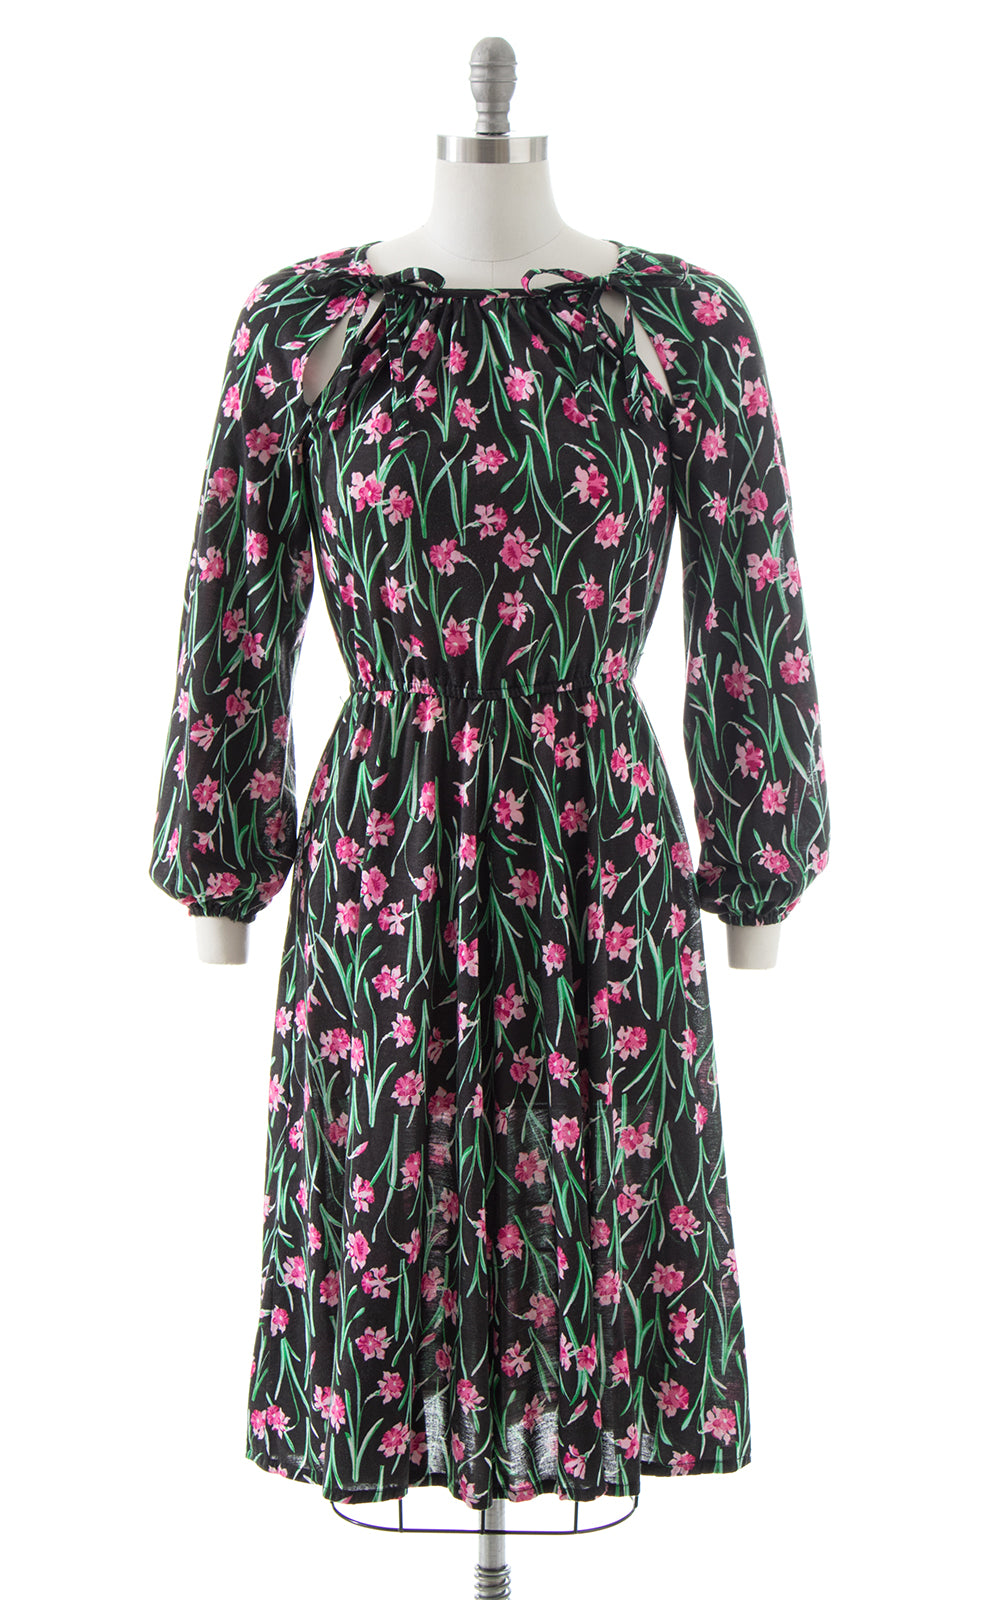 1970s Floral Jersey Dress